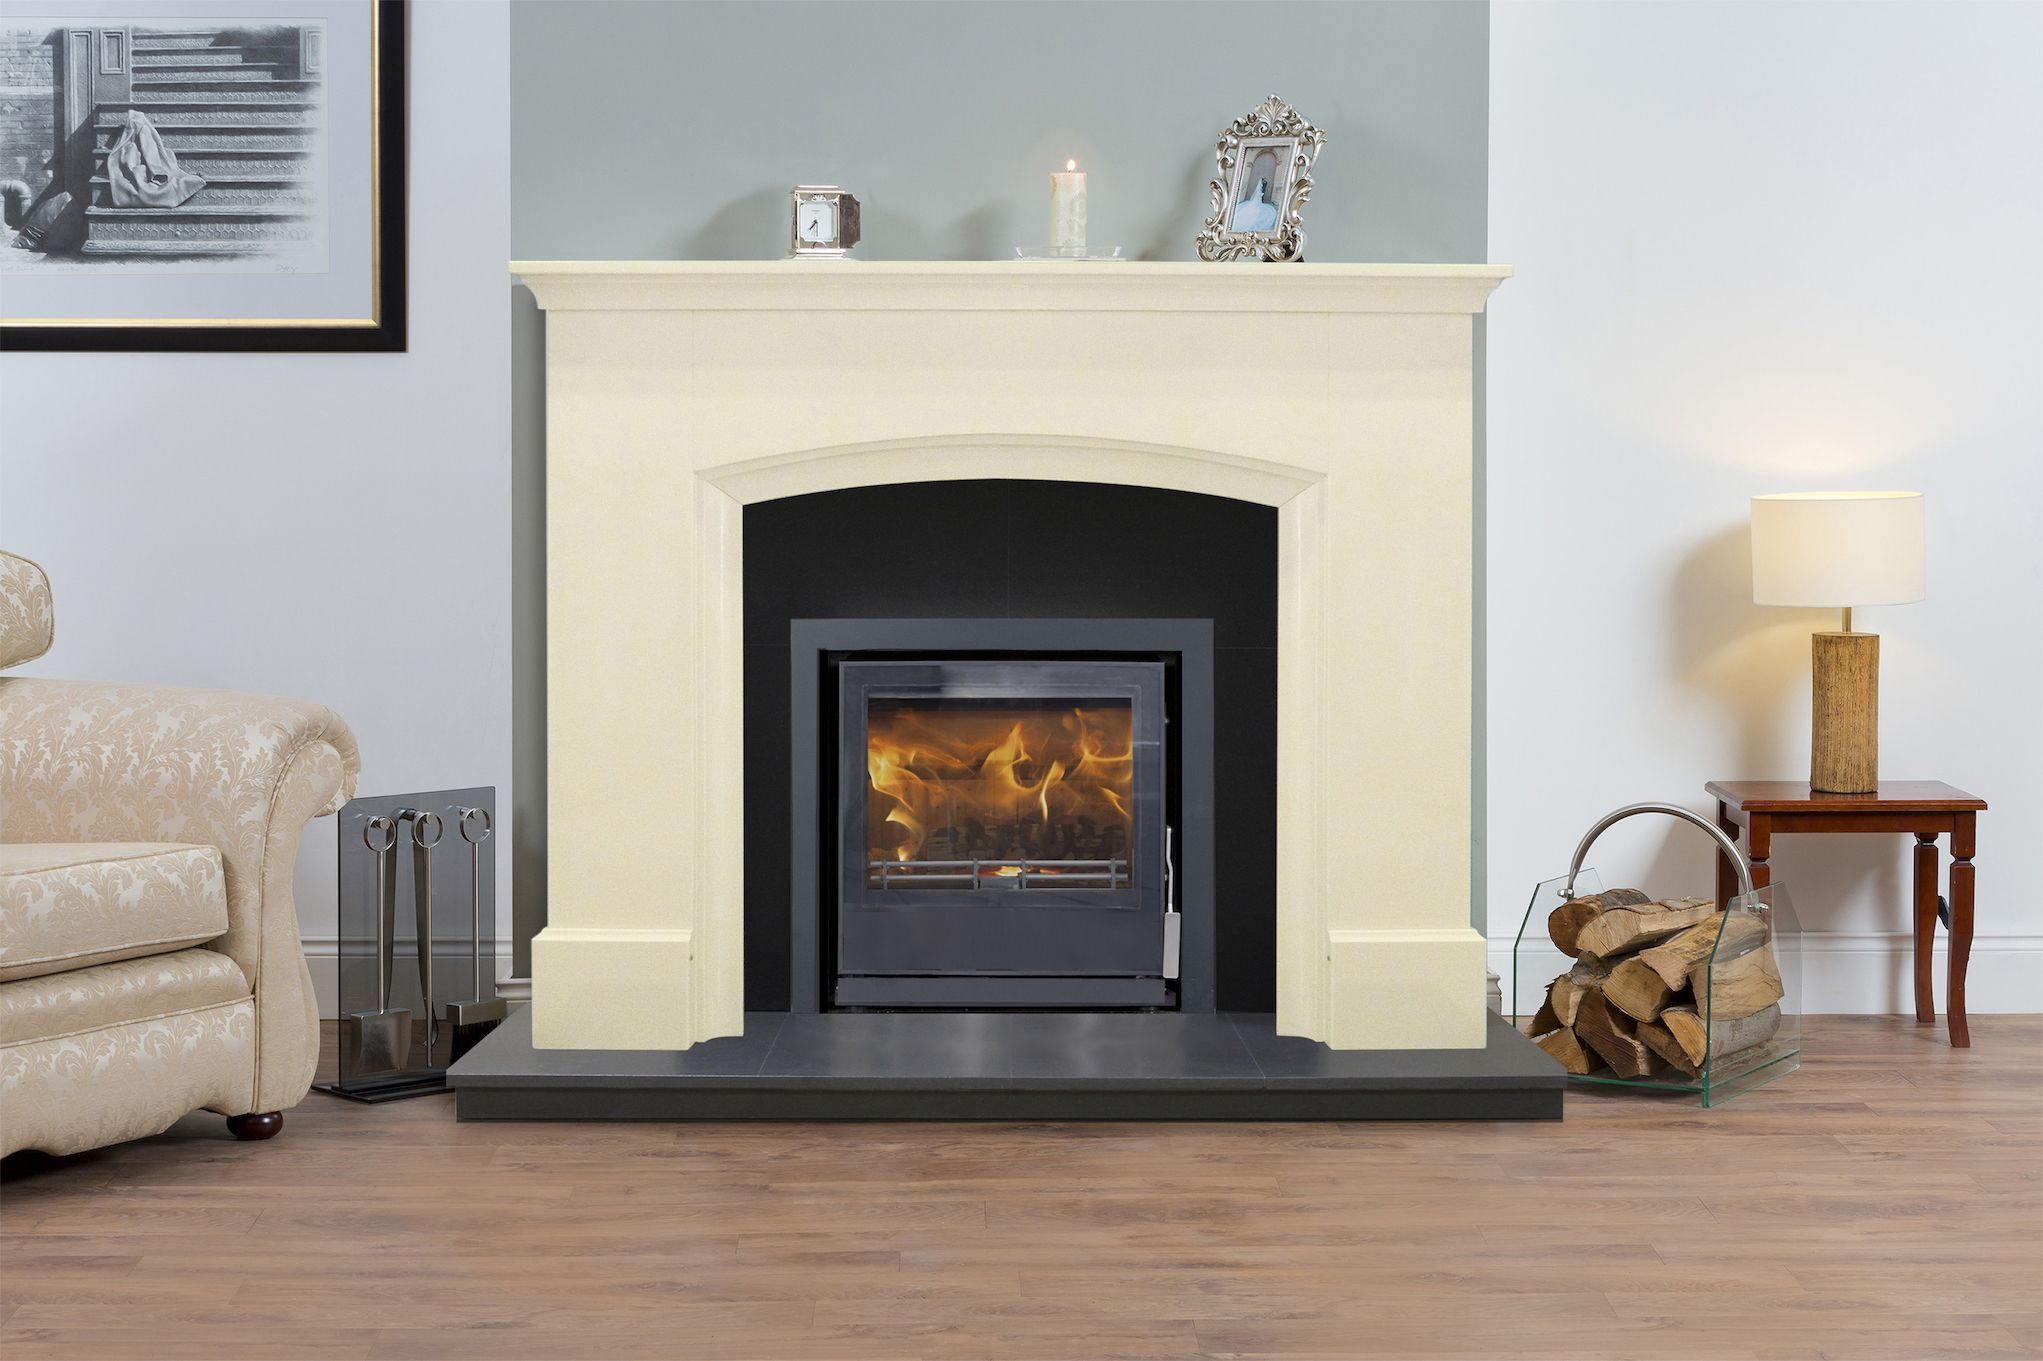 Charmant Fireplace Surrounds